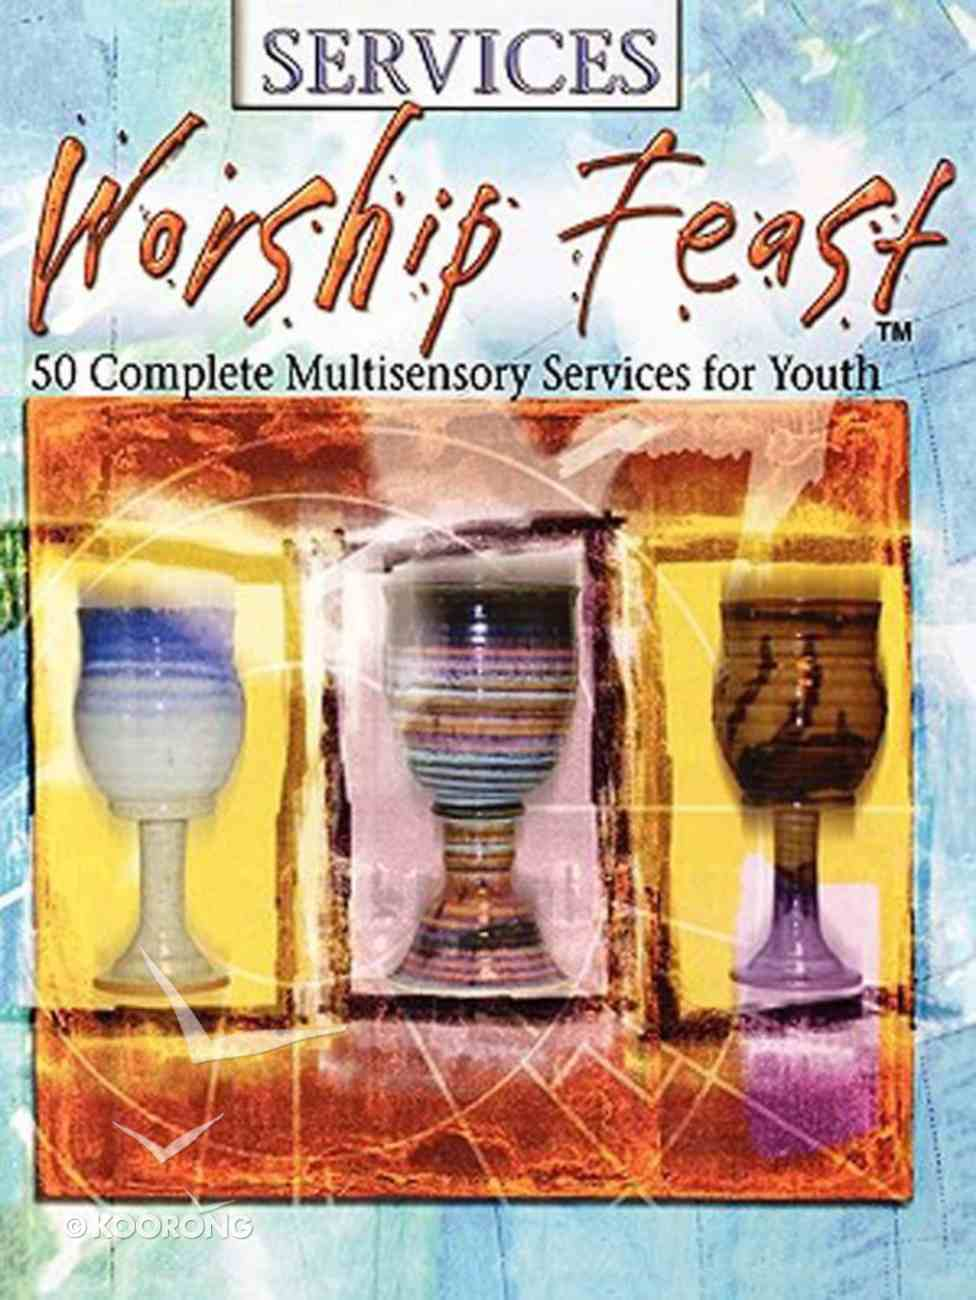 Services (Worship Feast Series) Paperback